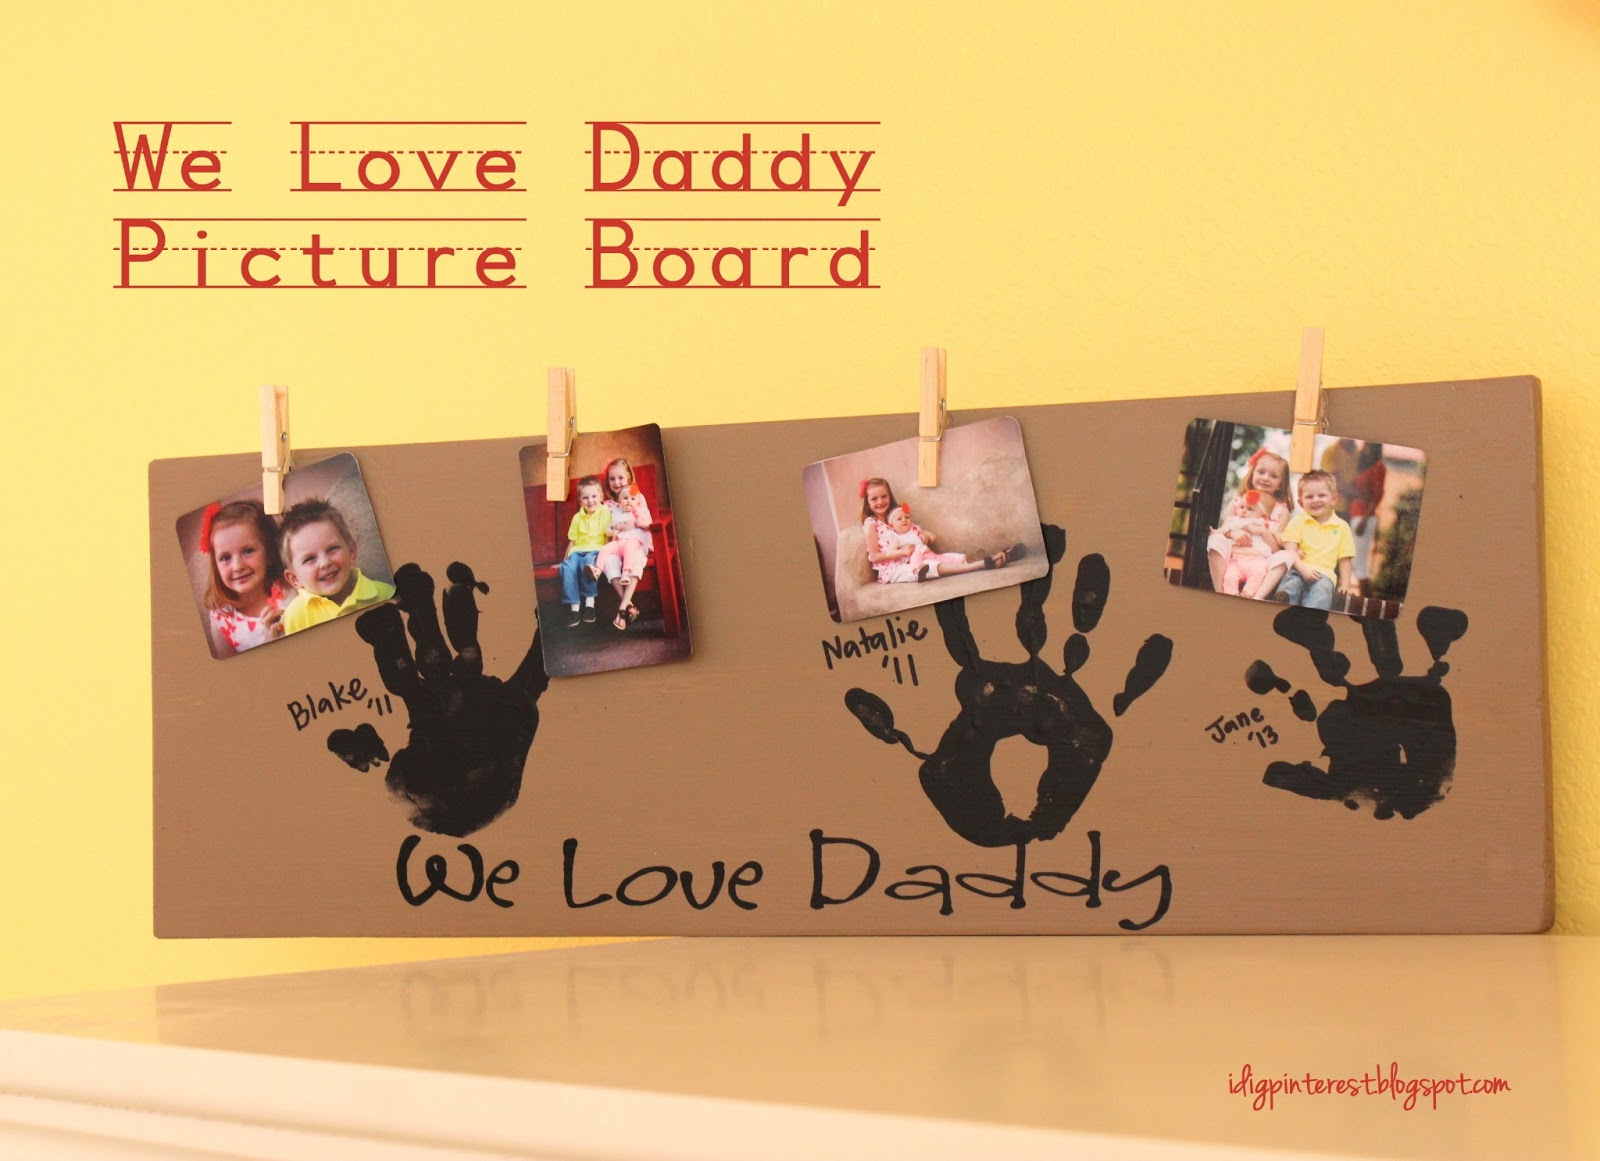 We Love Daddy Hand Print Photo Board I Dig Pinterest